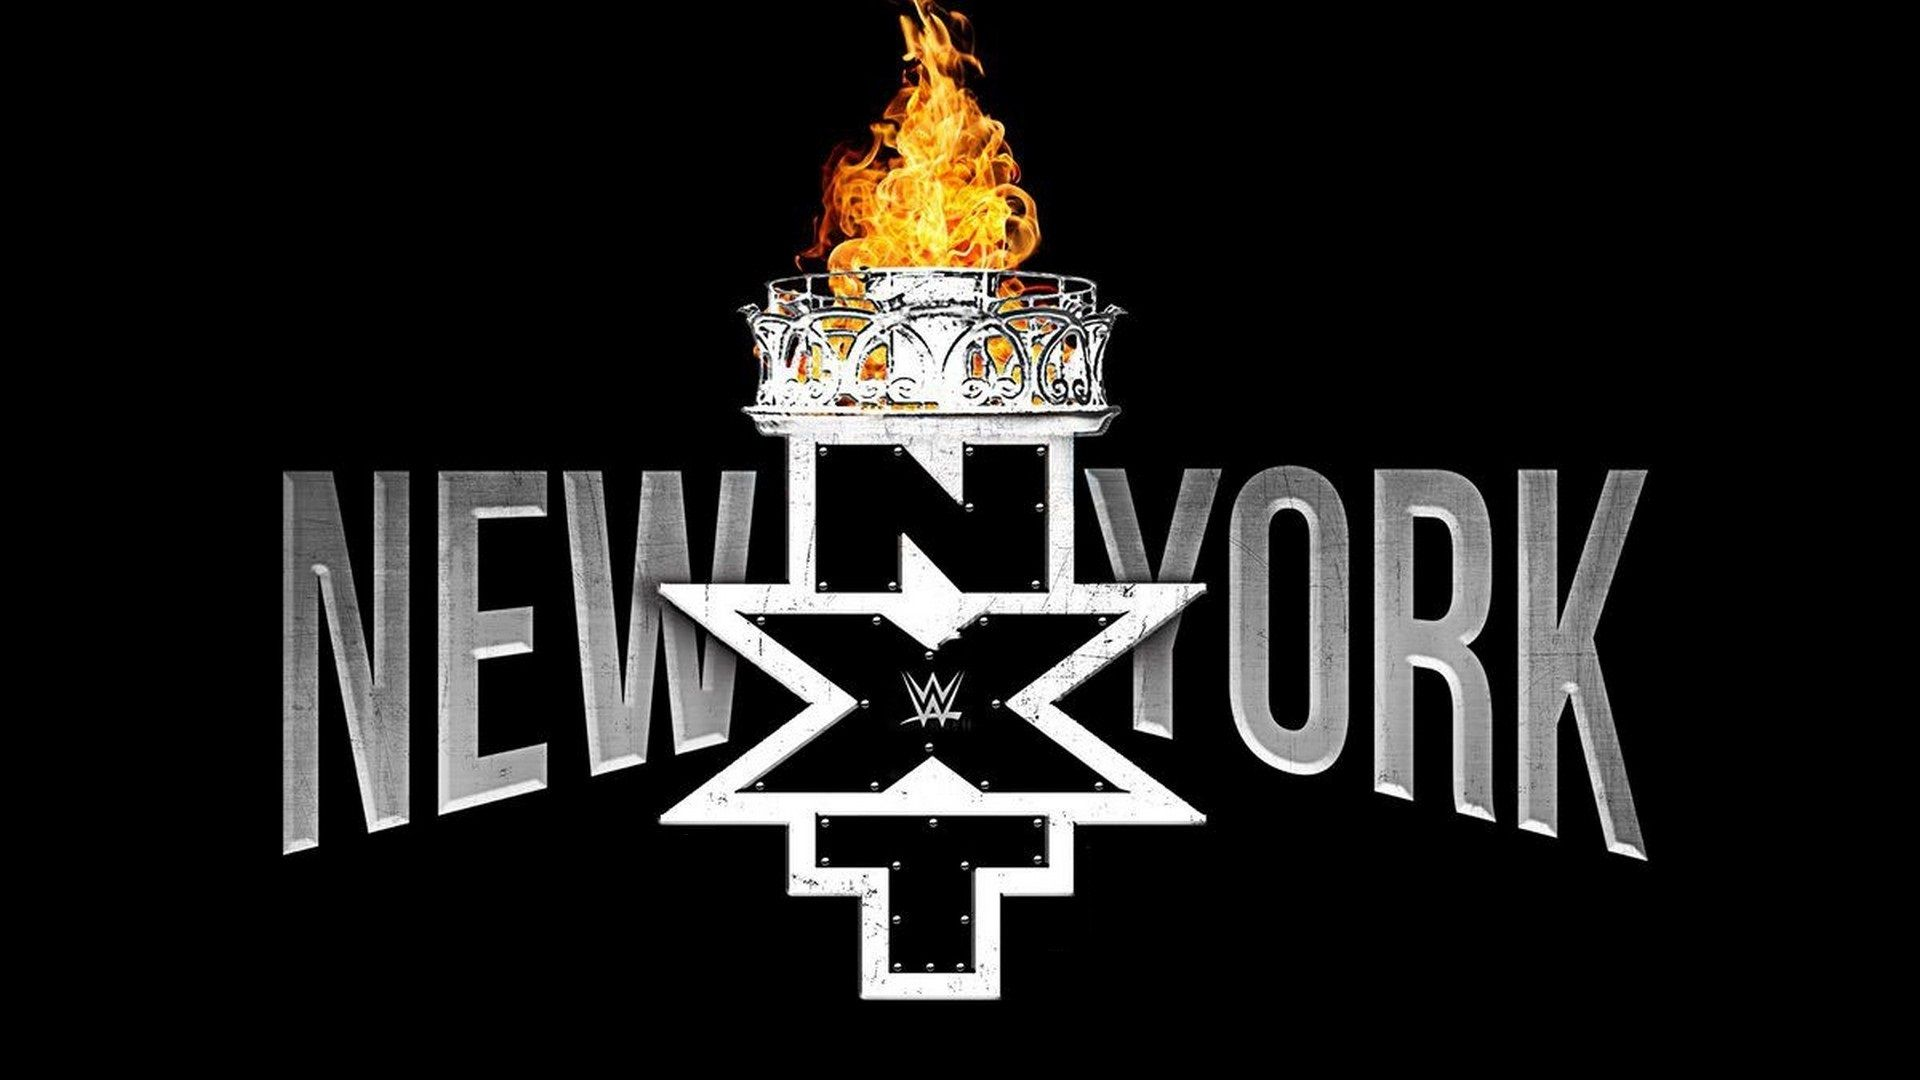 NXT Desktop Backgrounds Nxt takeover, Wwe, Wwe wallpapers